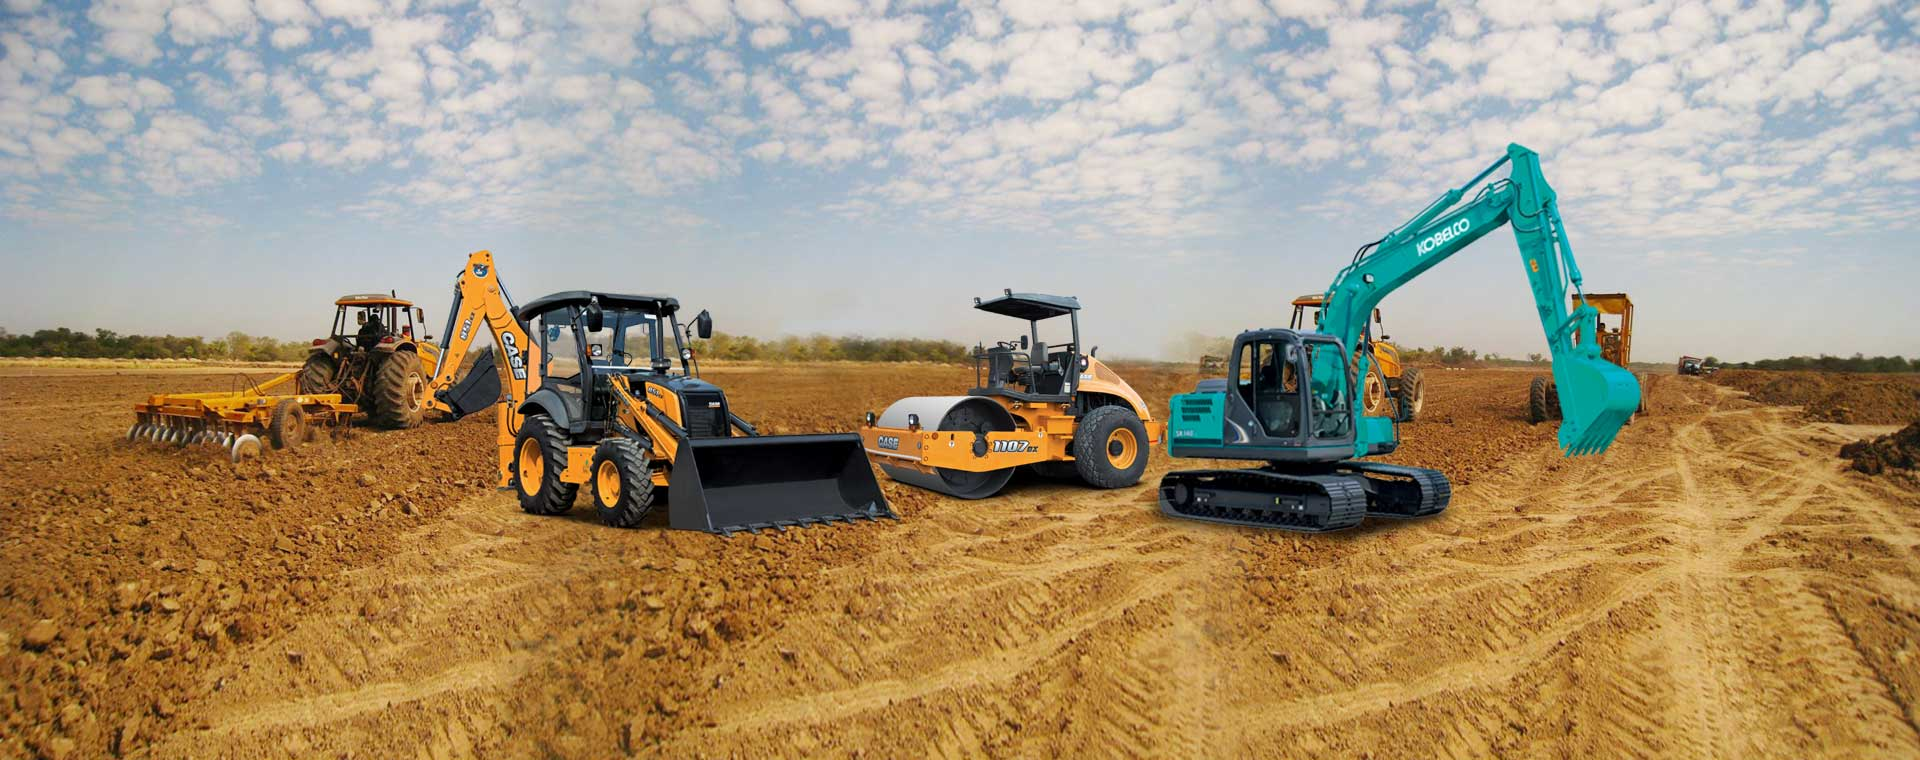 Productive and Rugged Machines for Compaction Uses in Construction